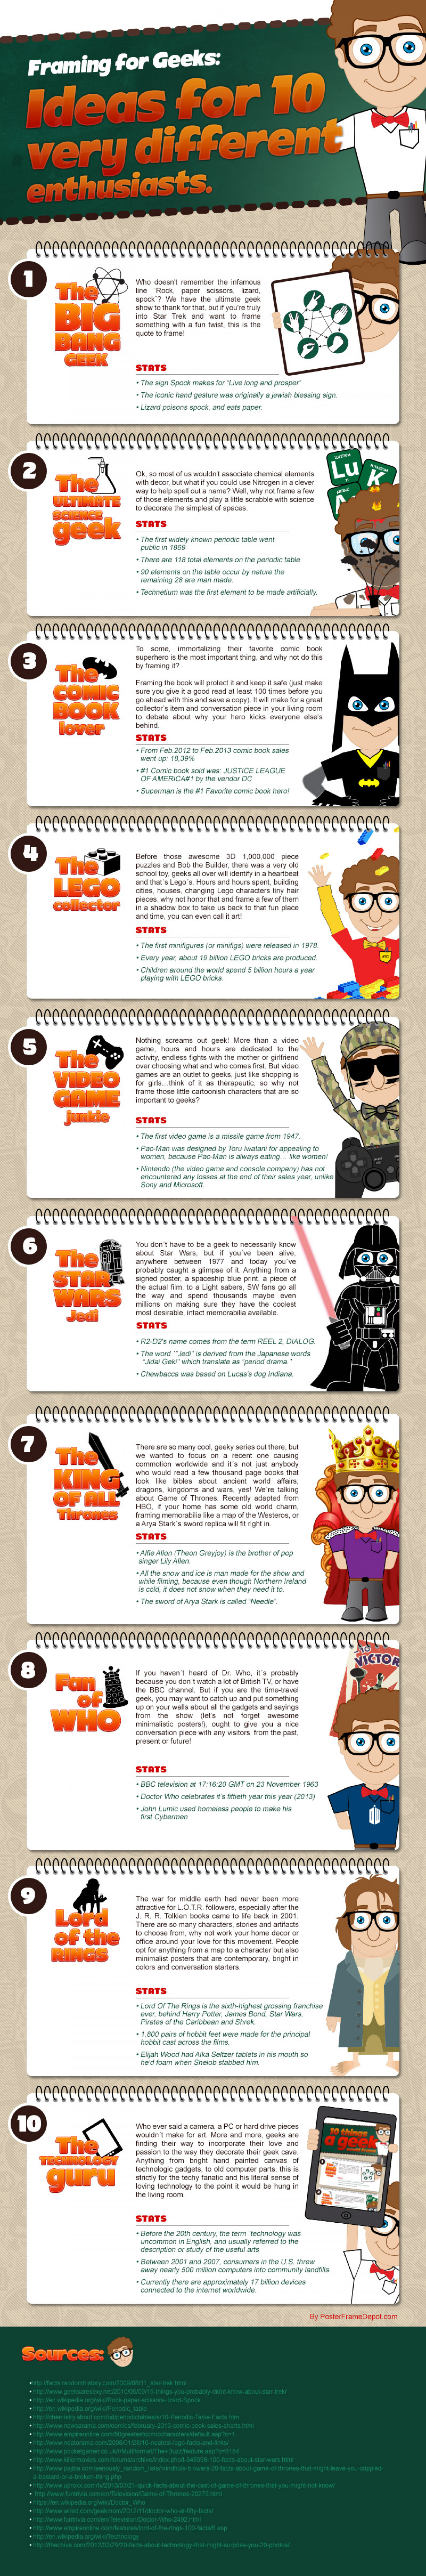 What geeks frame! Infographic